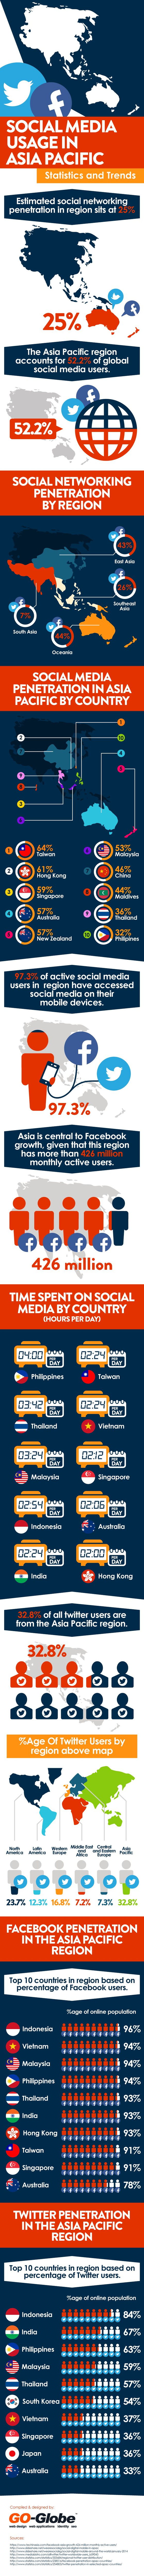 Social Media Usage in the Asia Pacific: Statistics & Trends [INFOGRAPHIC]